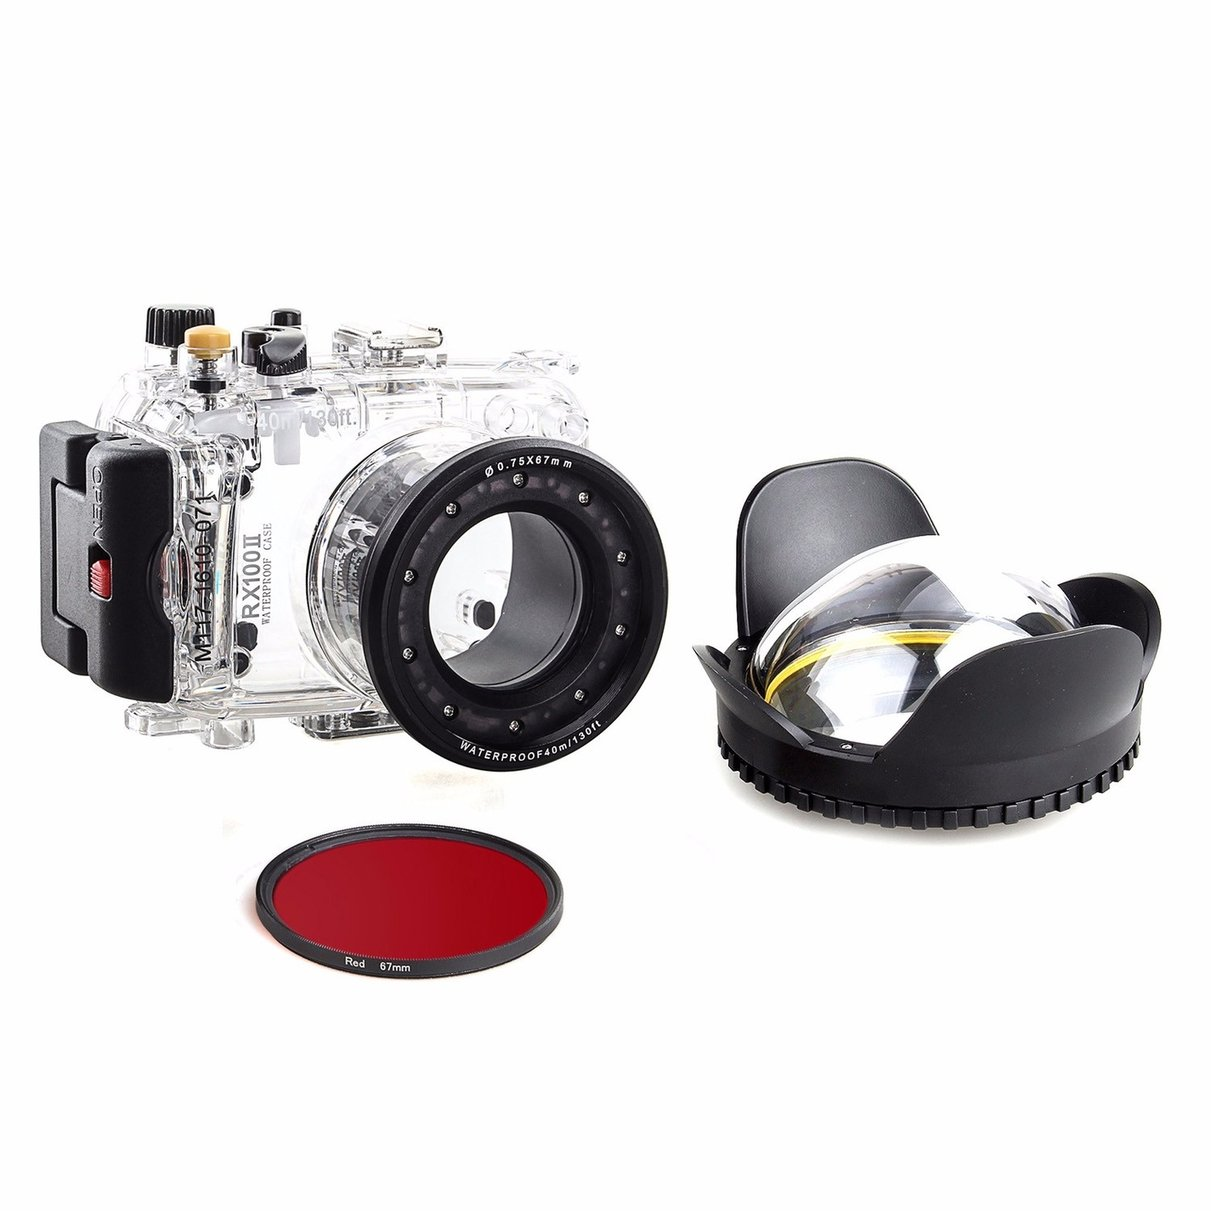 40m/130f Waterproof Underwater Camera Housing Diving Case for SONY DSC RX100 ii + Red Filter 67mm + 67mm Fisheye Lens 2018 come eken h9r waterproof 30m action camera remote control ultra hd 1080p 60fps camera 2 0 lcd pro camera sj 4000 wi fi